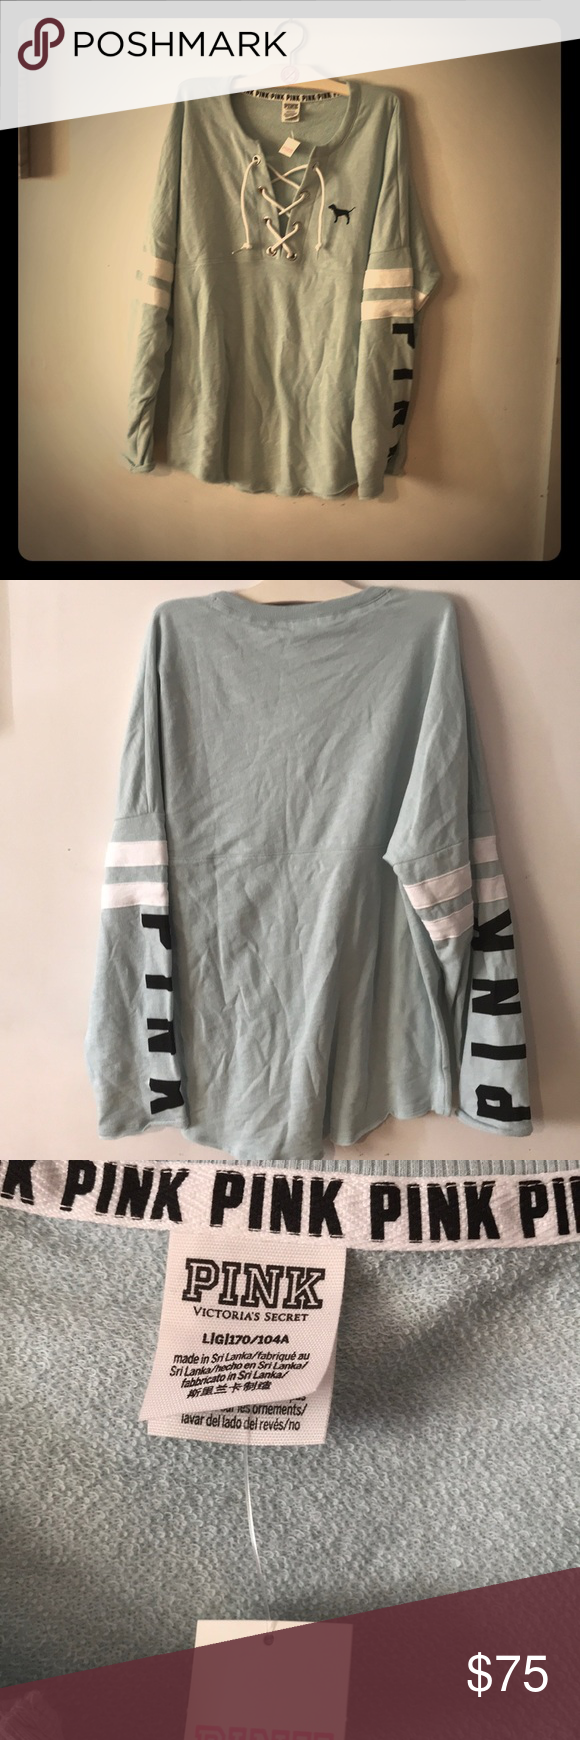 BNWT VS PINK LACE UP TUNIC TOP BNWT VS PINK LACE UP TUNIC TOP oversized pale blue lace up raw edge curved hem and sleeves PINK written in black on both sleeves & 2 white stripes I Do NOT TRADE all offers through offer option only rude comments will be blocked PINK Victoria's Secret Tops Tunics